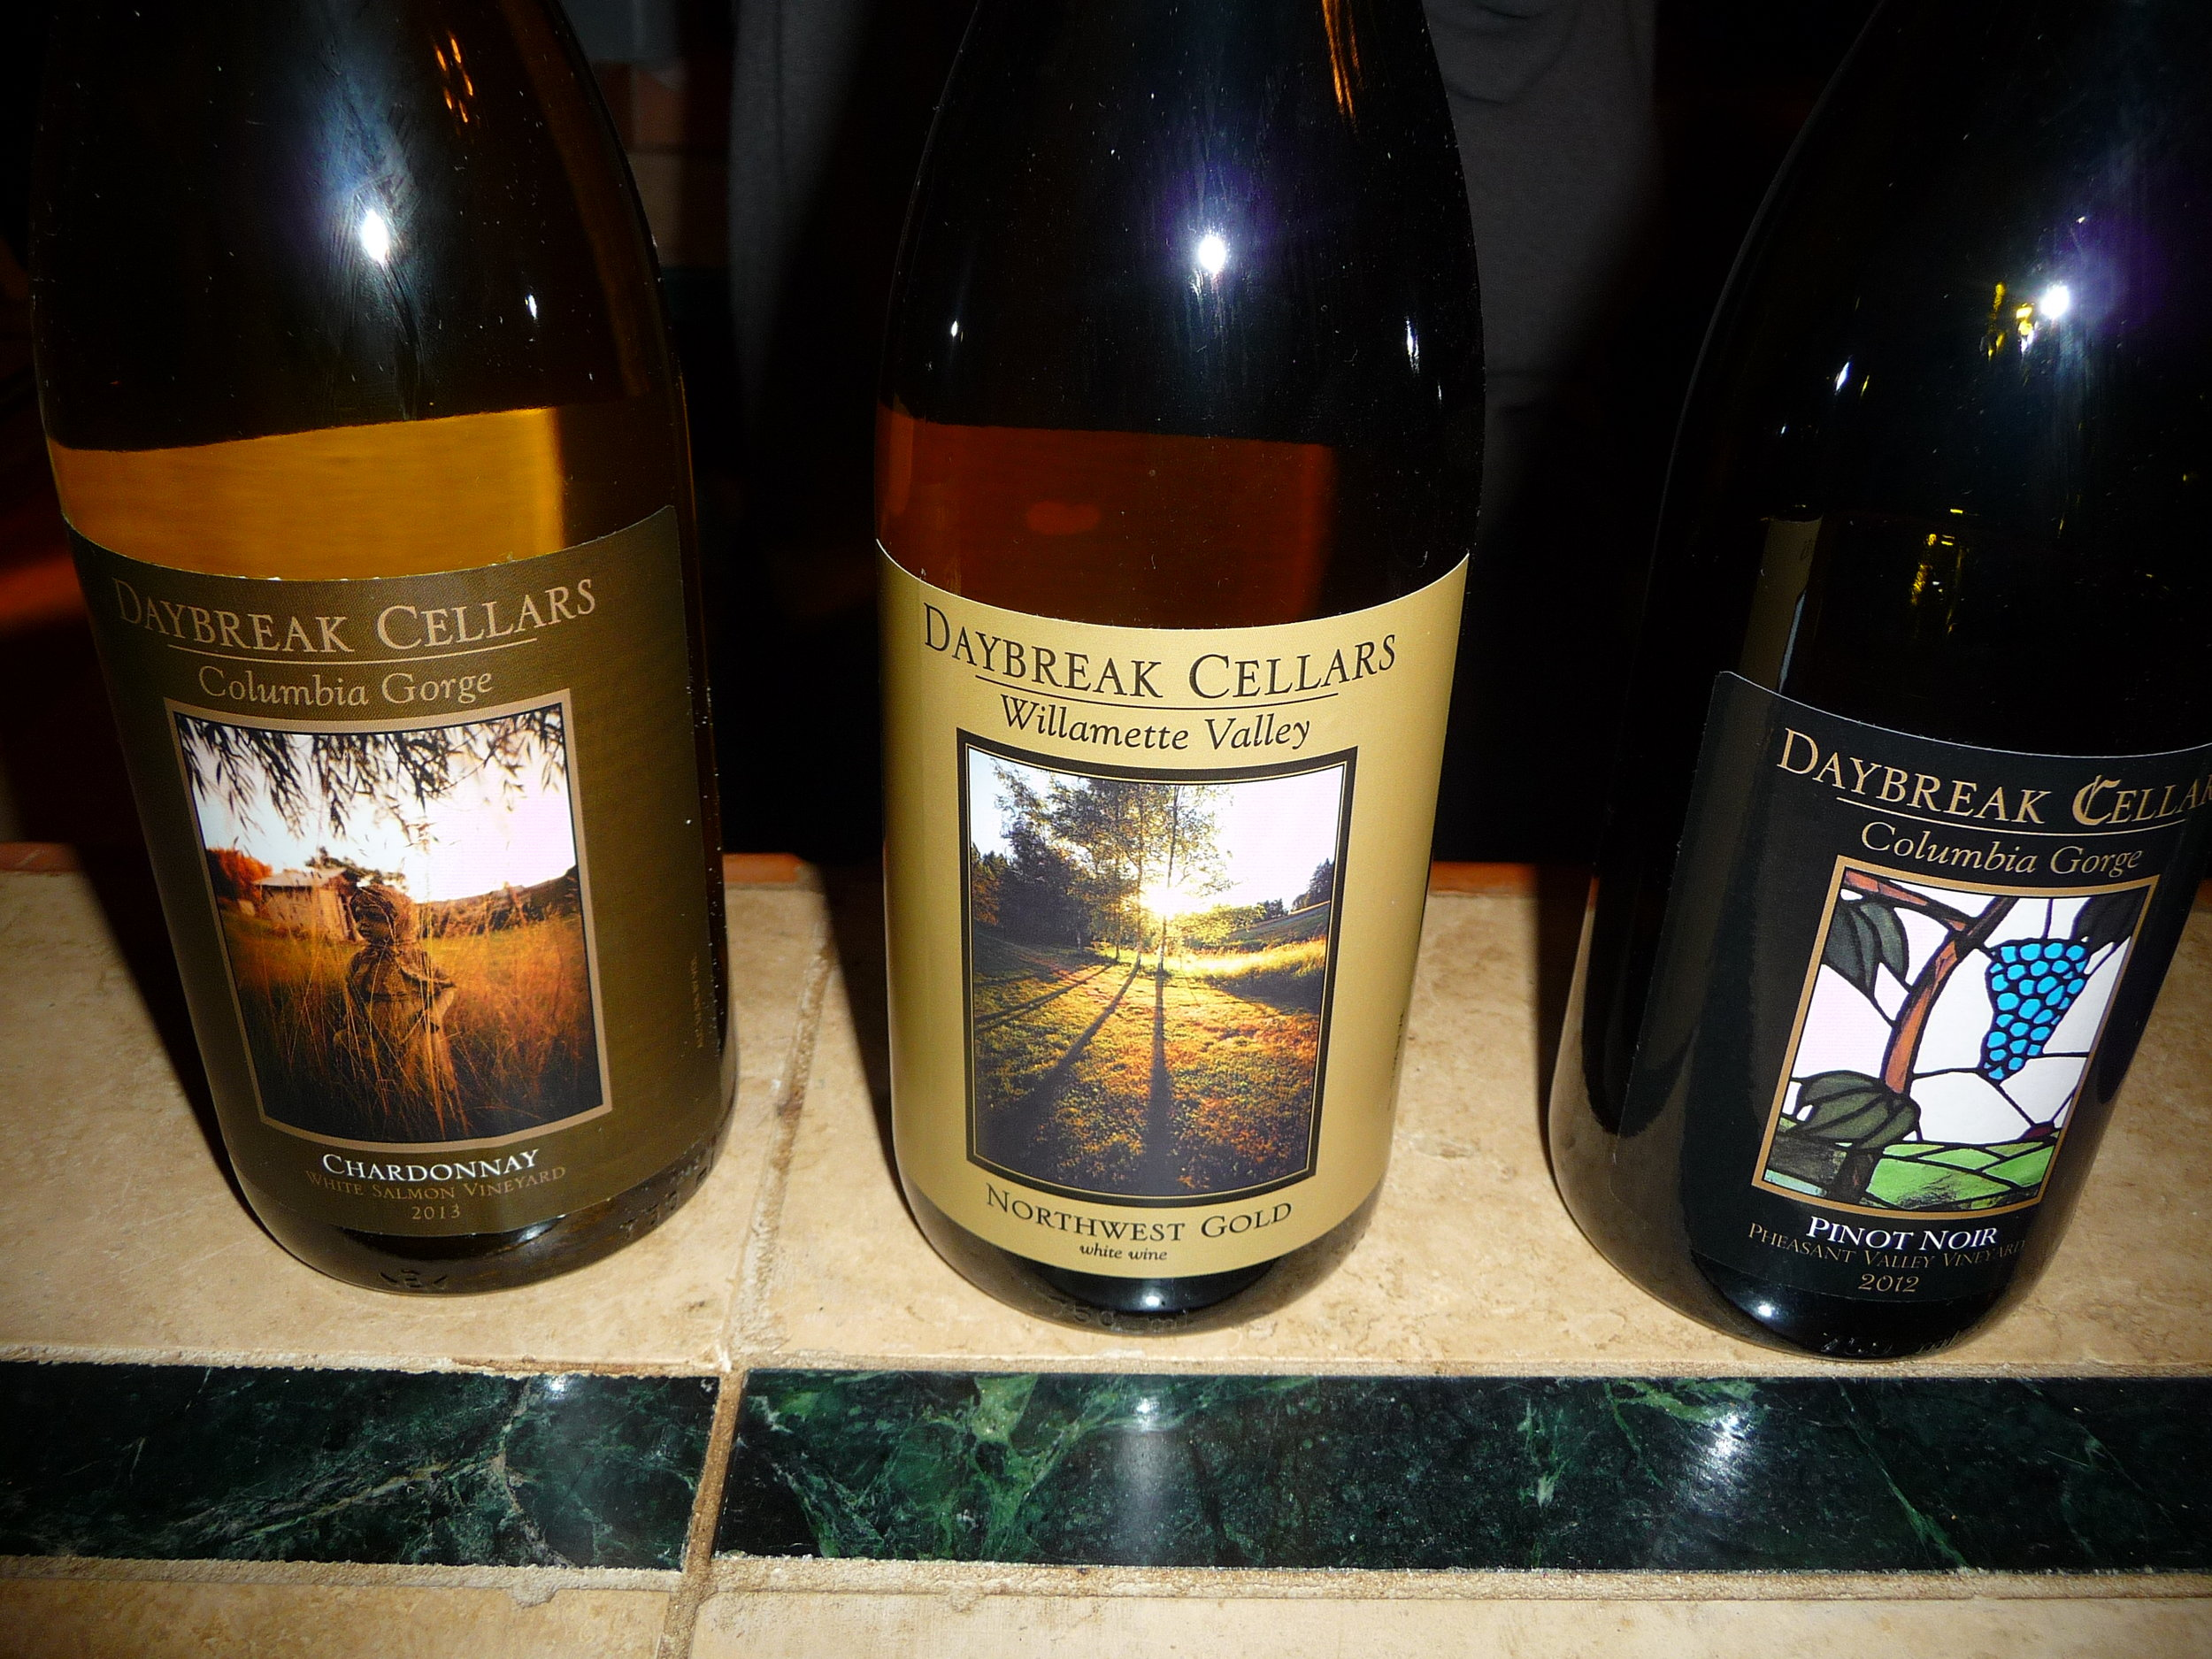 Daybreak Cellars' labels are from photos taken around their property including the stained glass one on the 2012 Pinot Noir